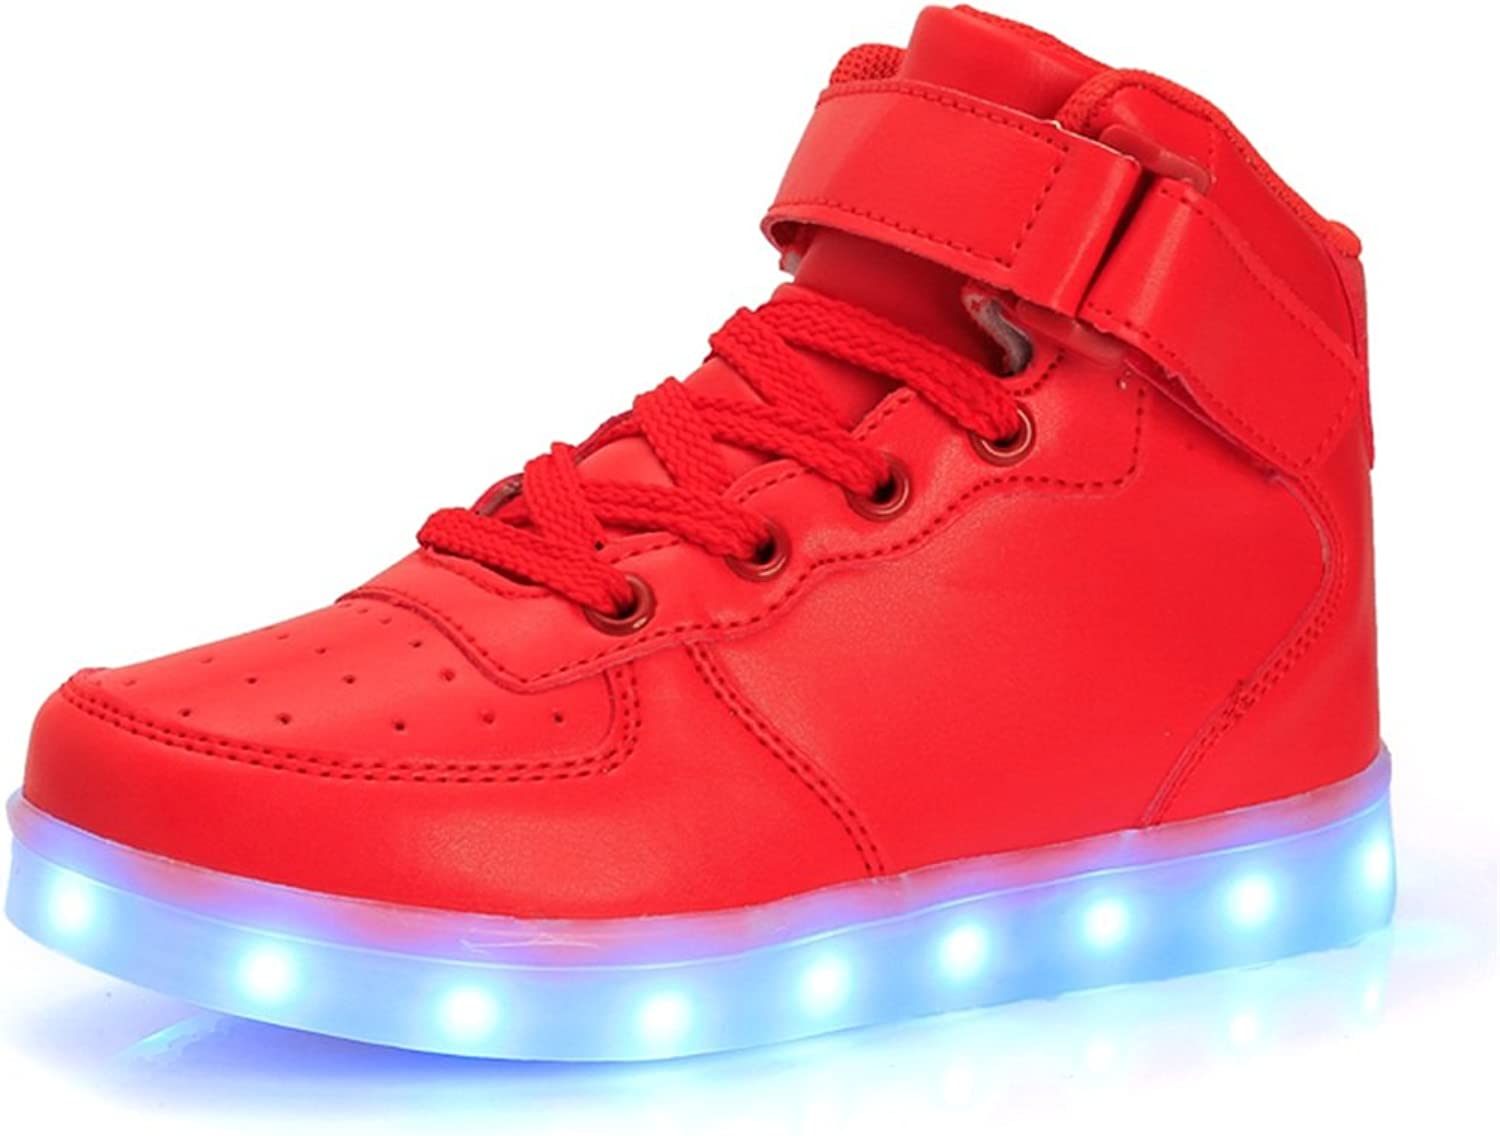 Lights up Sneakes LED shoes Flashing High Top shoes USB Charging 7 colors Flashing Sneakers for Kids Boys Girls